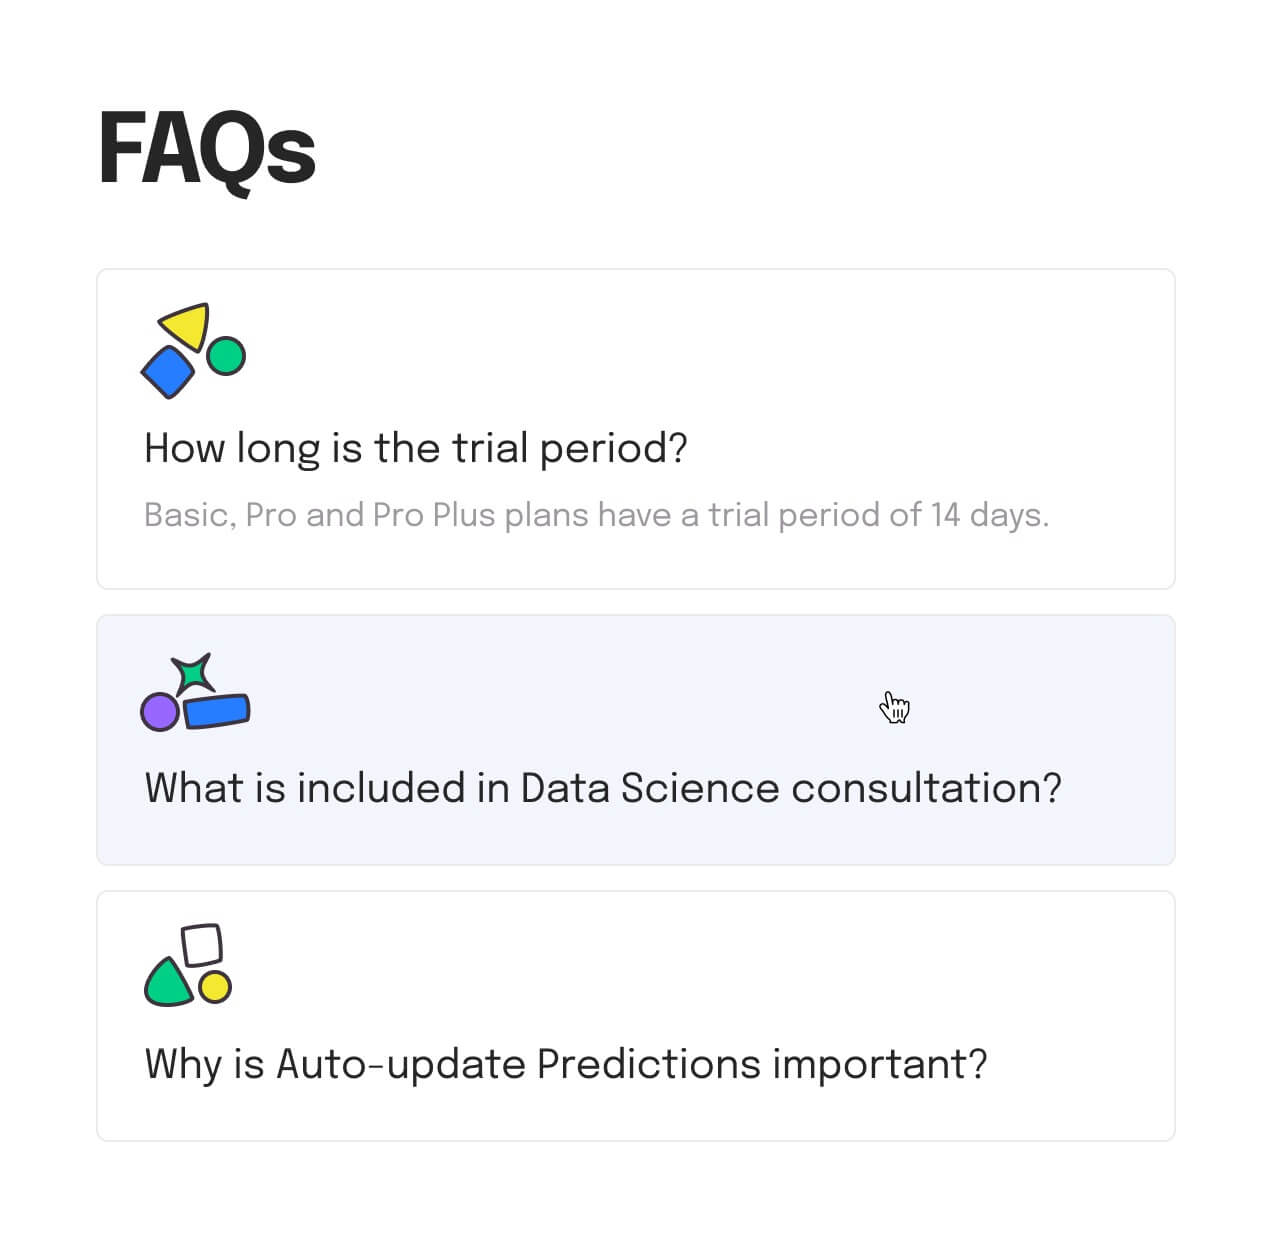 FAQs section